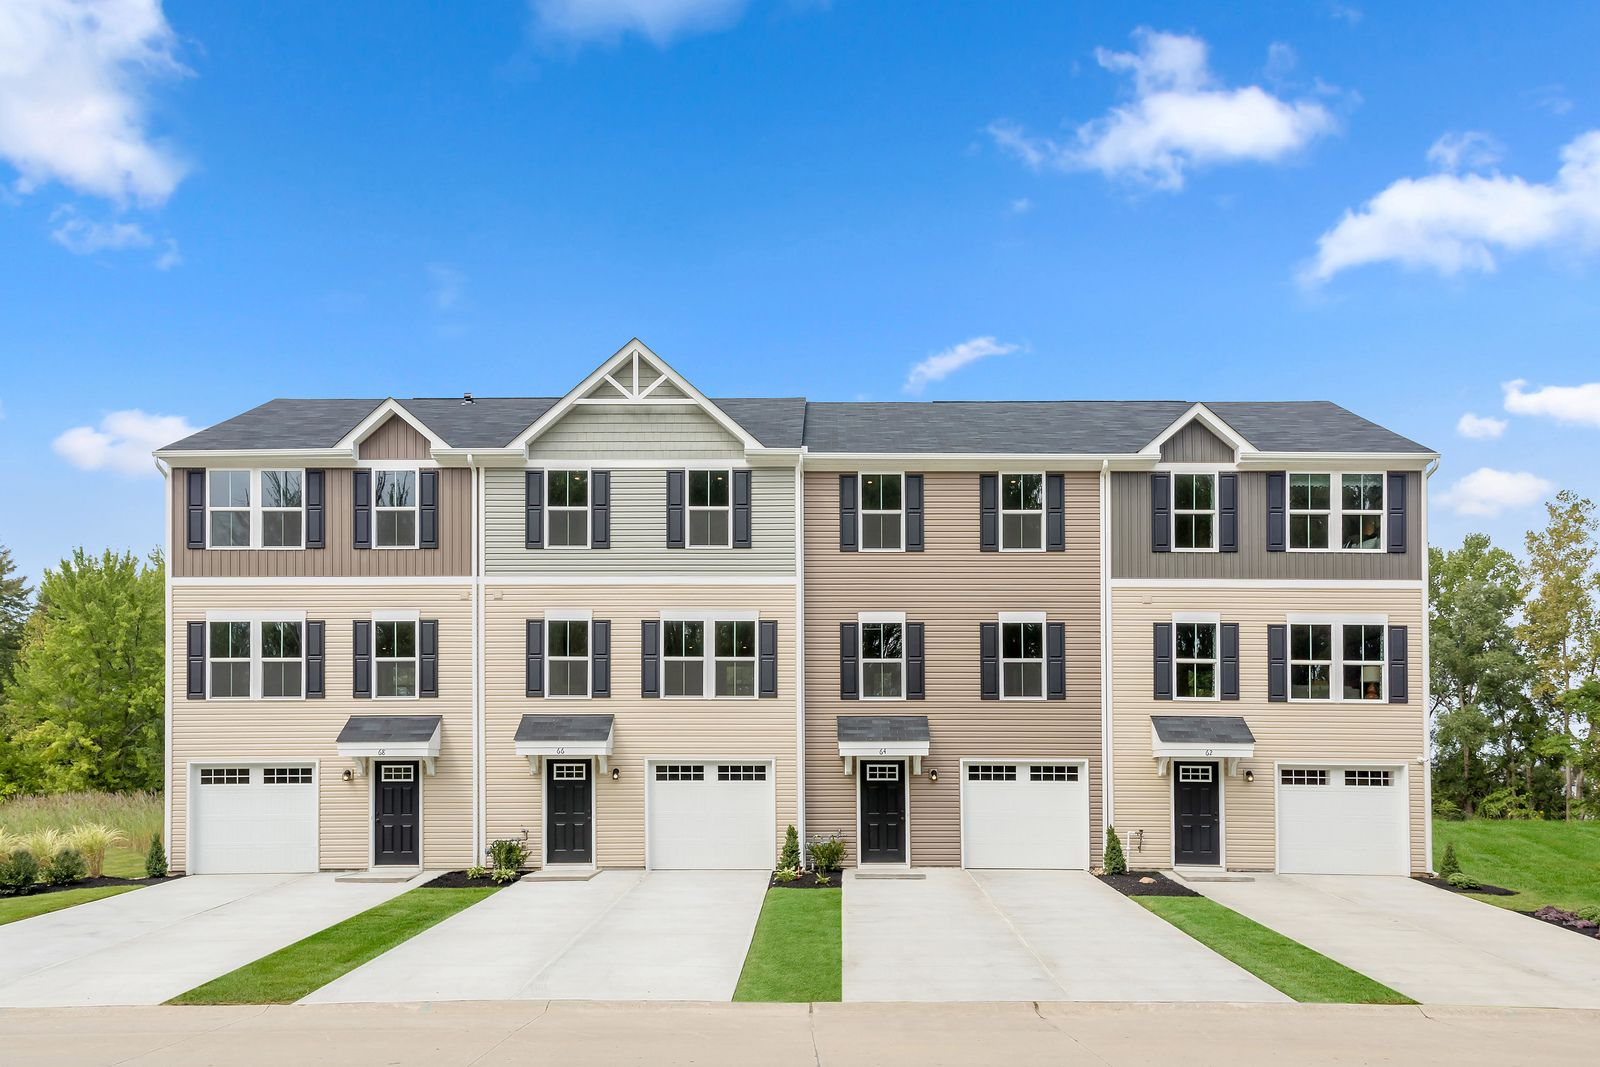 Why rent? Own an affordable townhome for the same or less in Simpsonville!